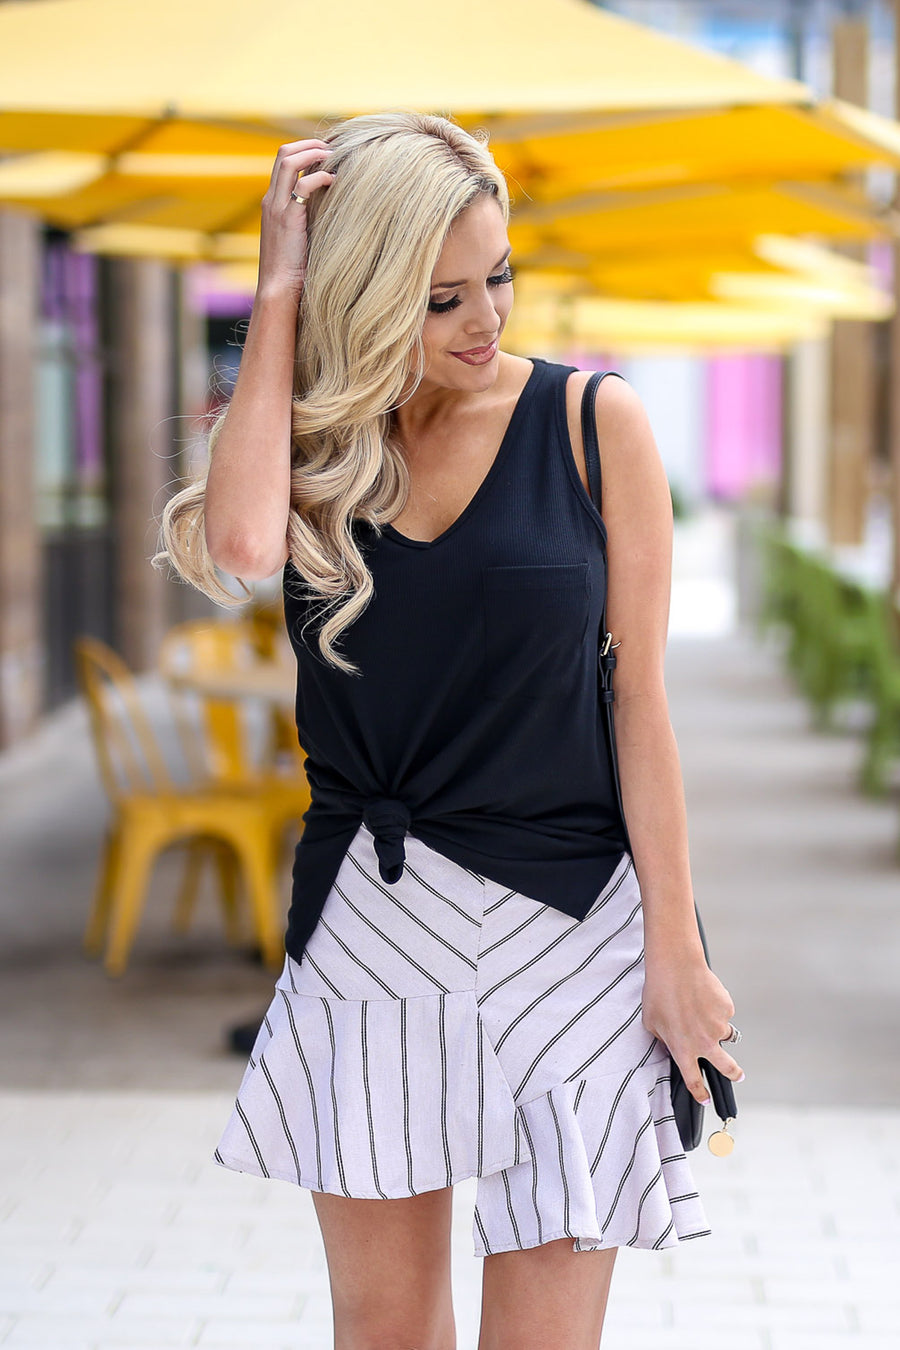 On My Way Up Striped Skirt - Natural & Black women's asymmetrical ruffled hem skirt, Closet Candy Boutique 1